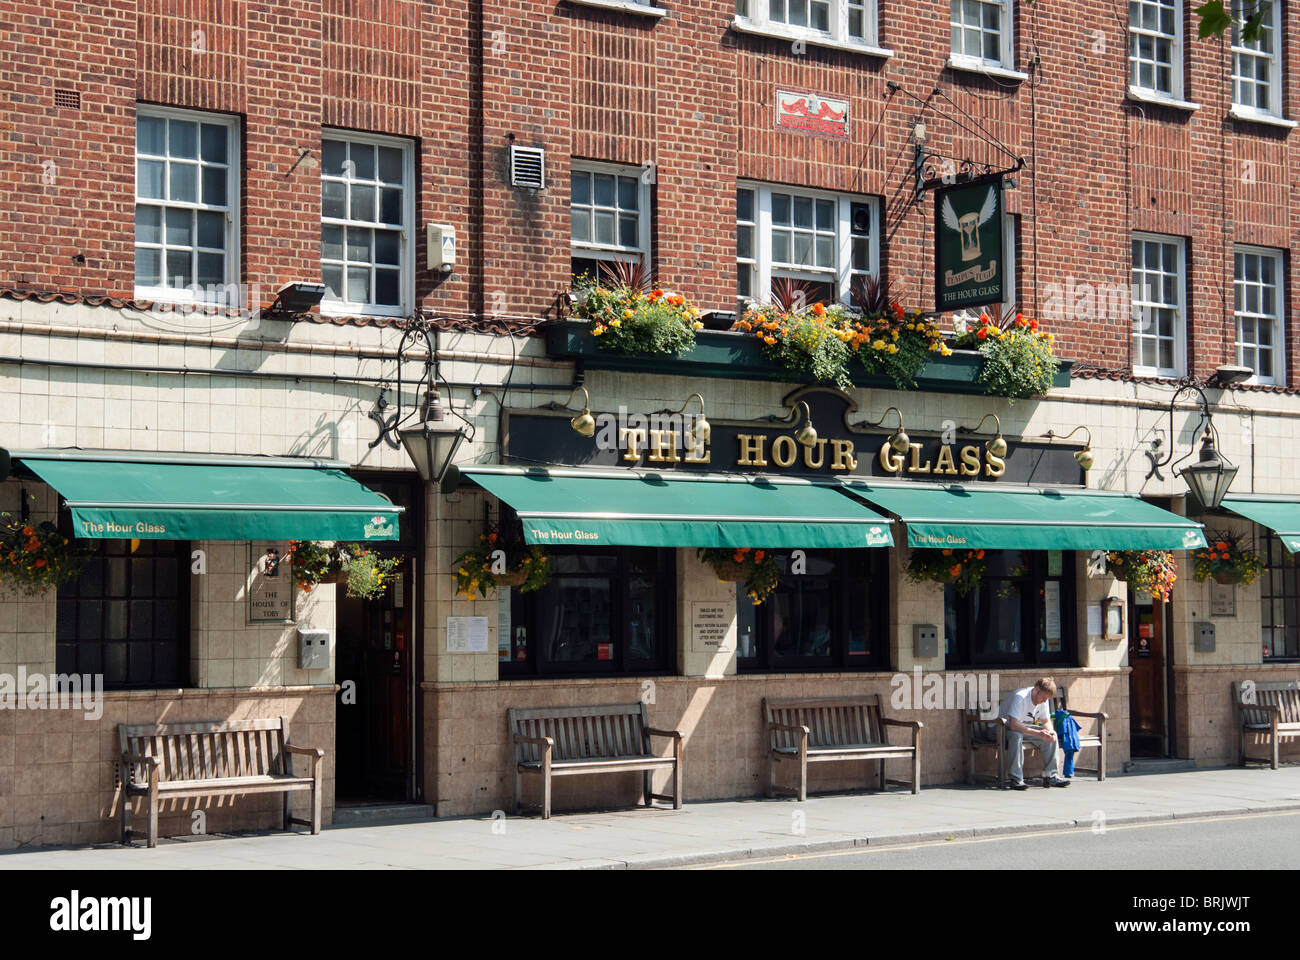 The Hour Glass, Brompton Road, London - Stock Image